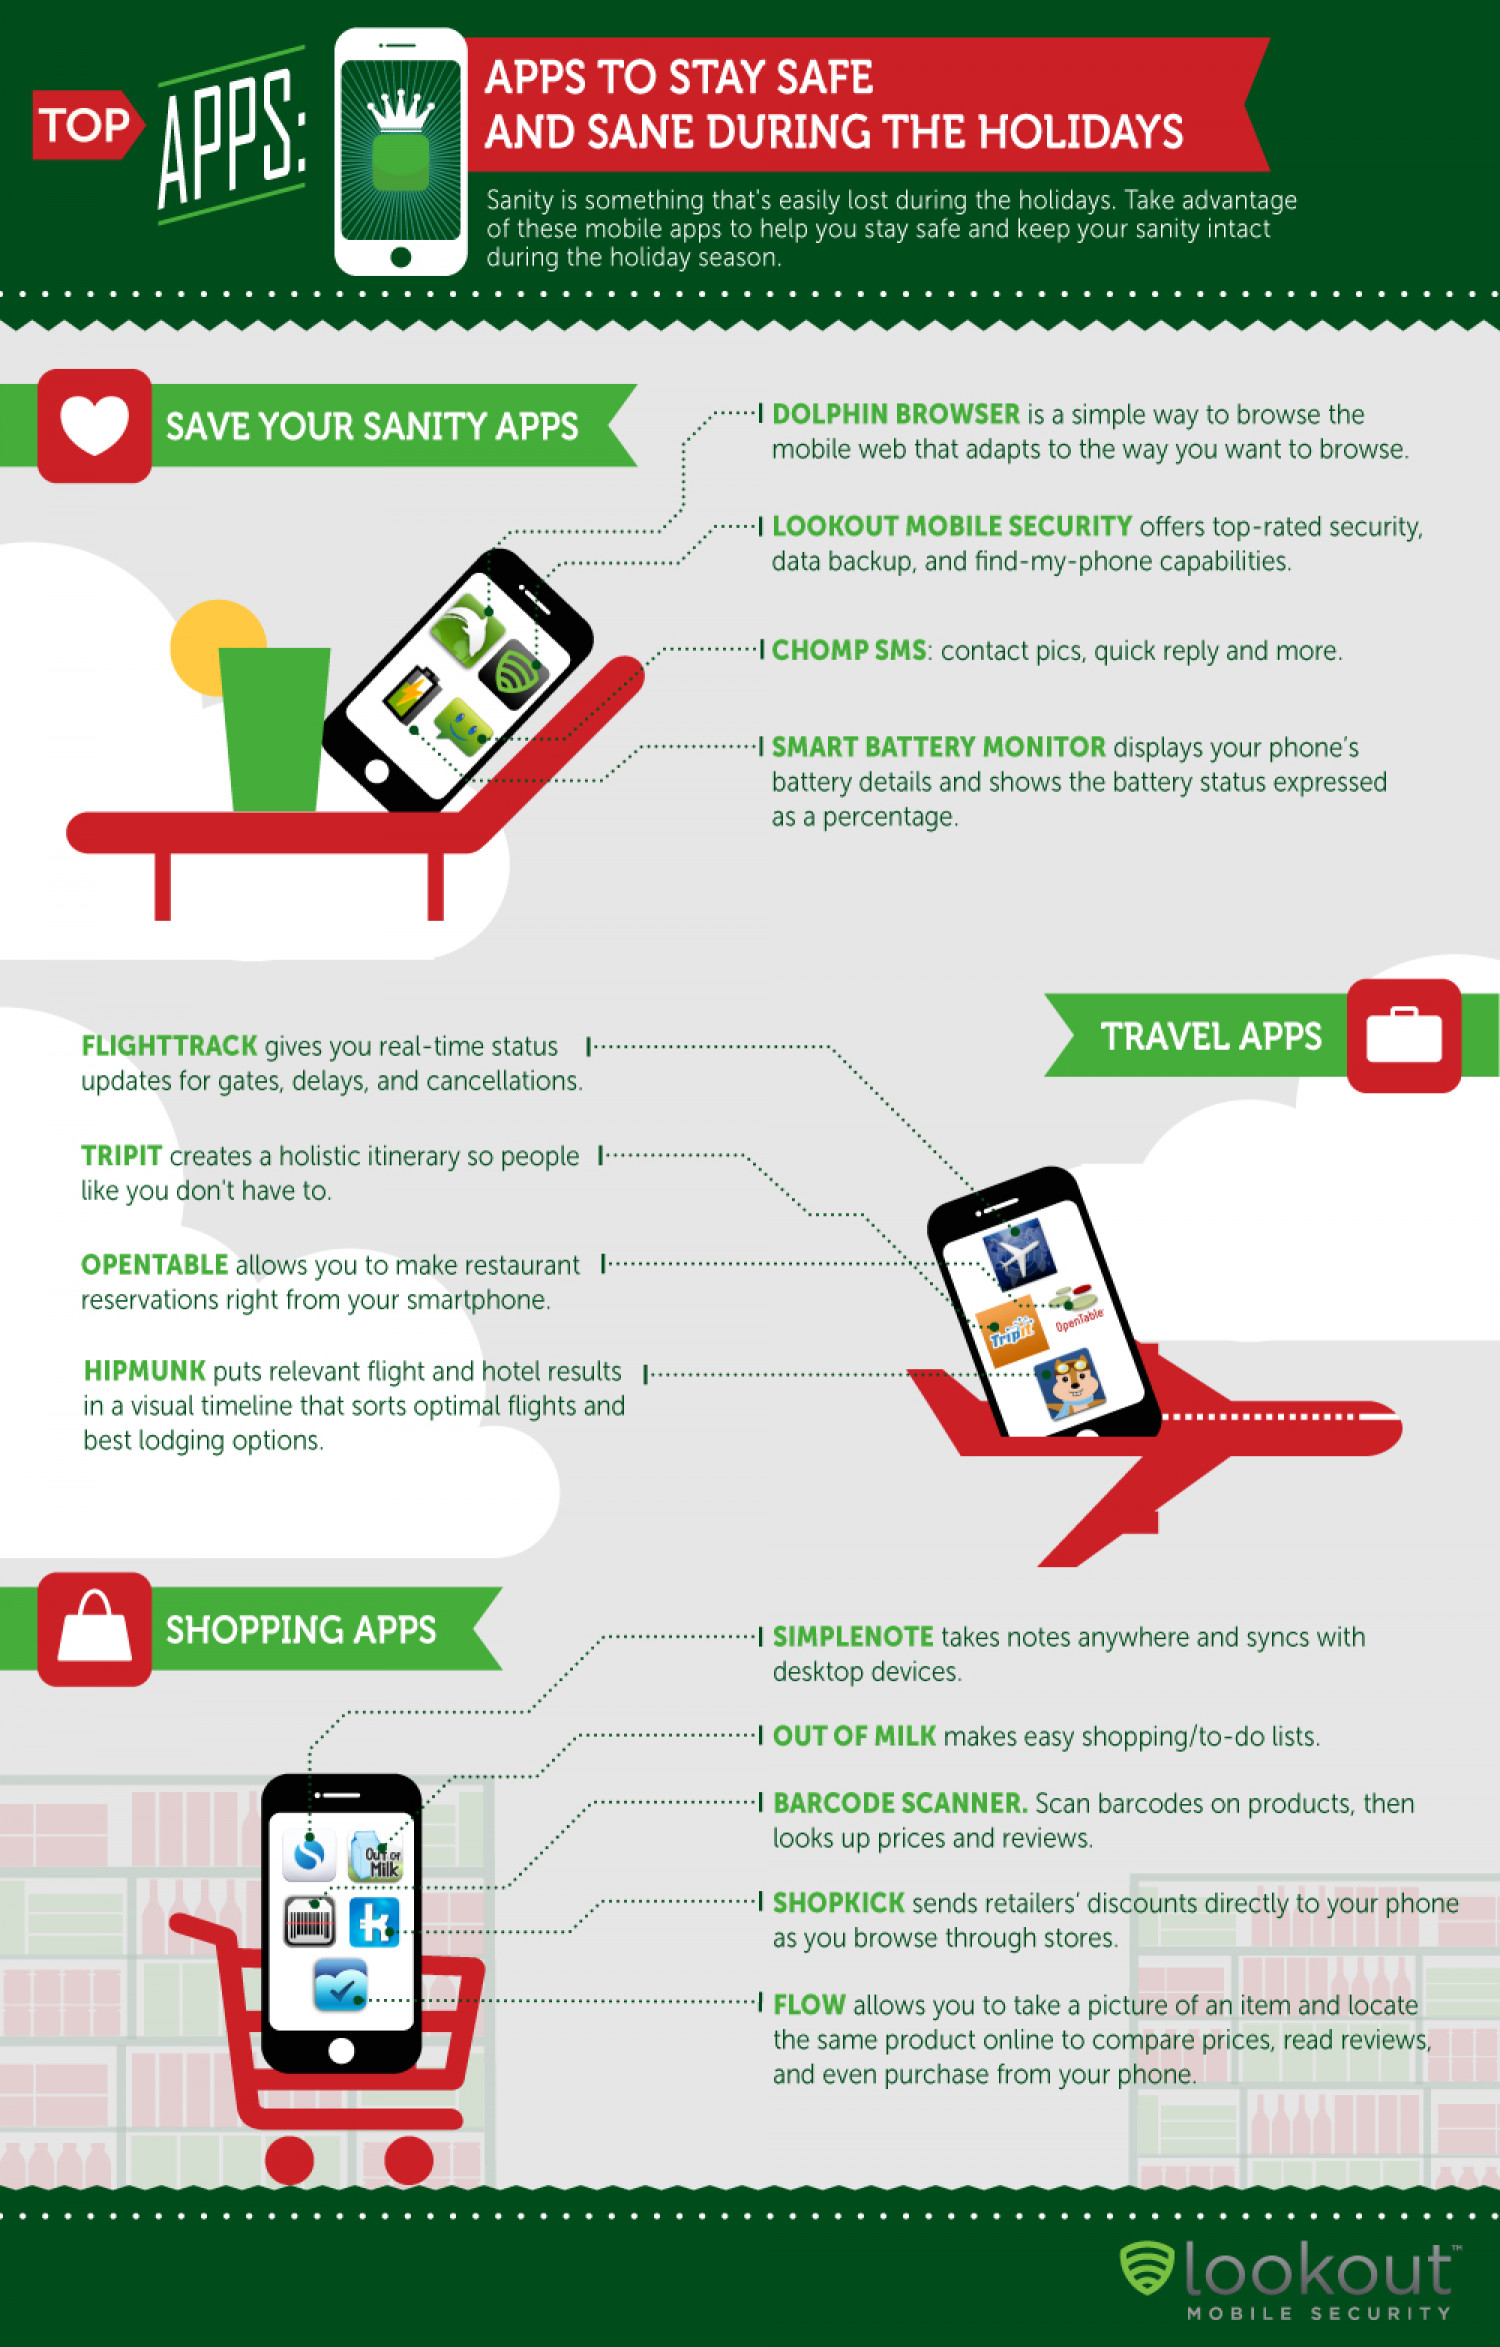 Apps To Stay Safe And Sane During The Holidays Infographic